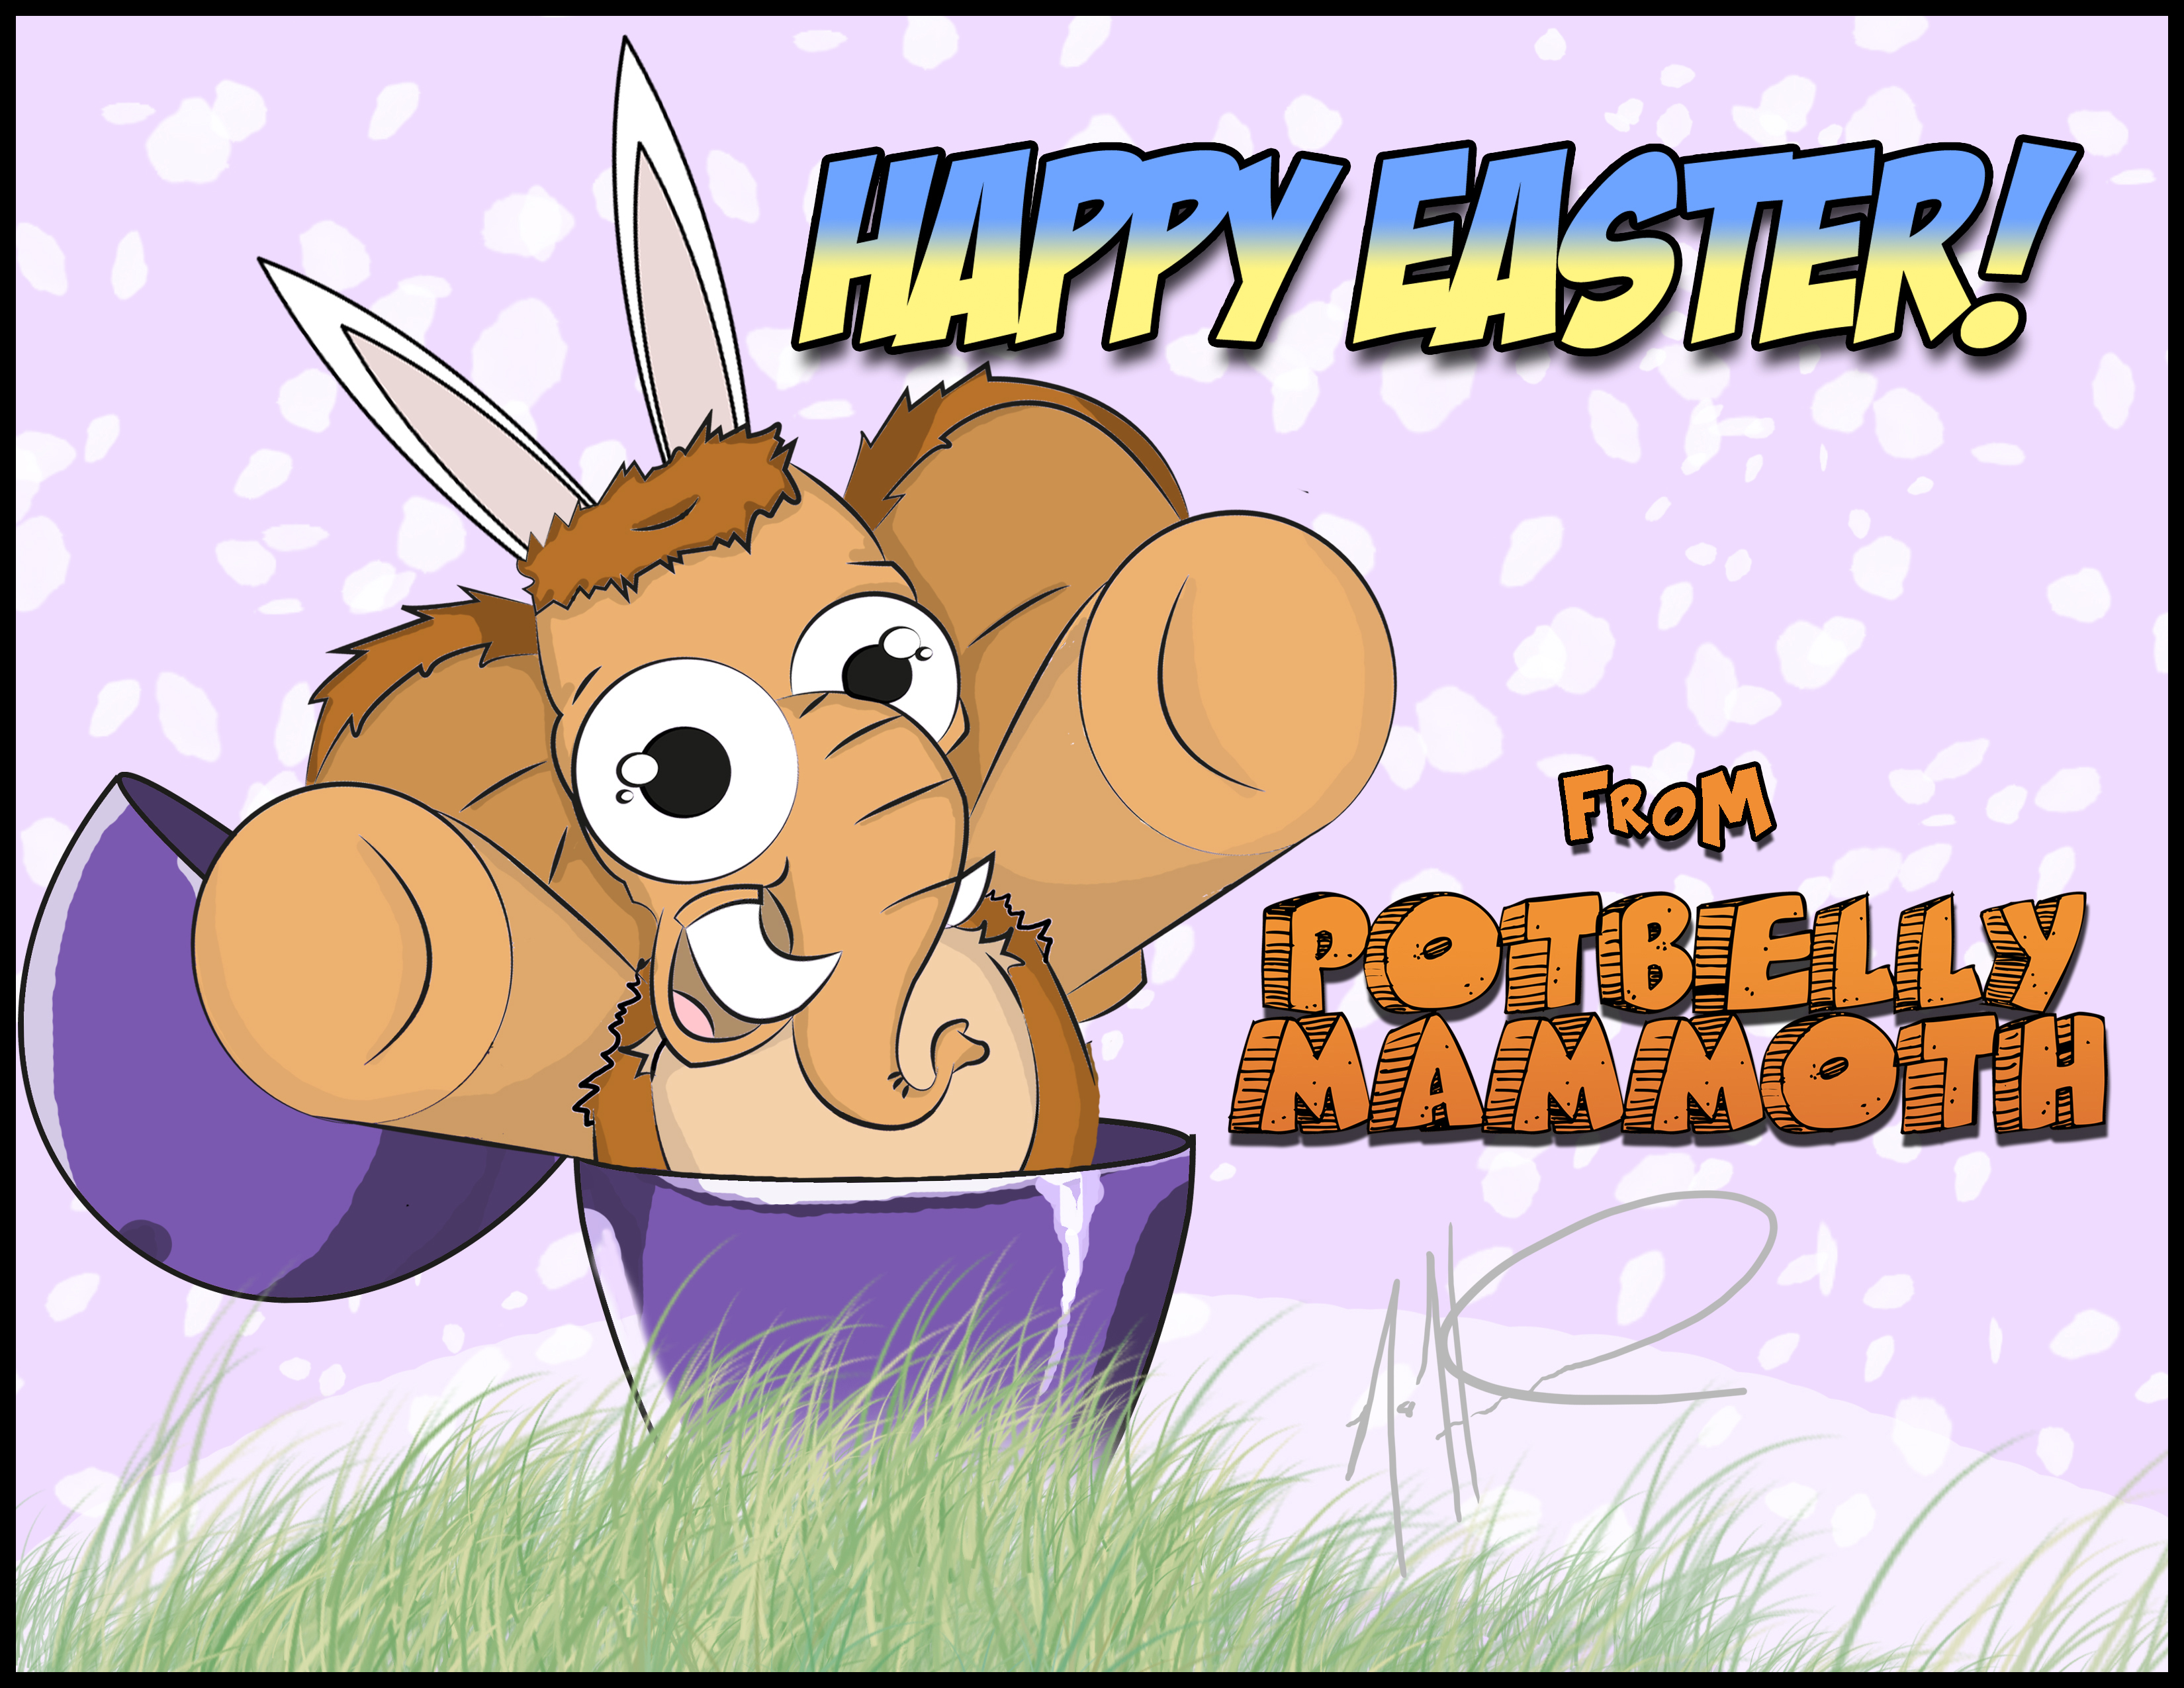 *Happy Easter*